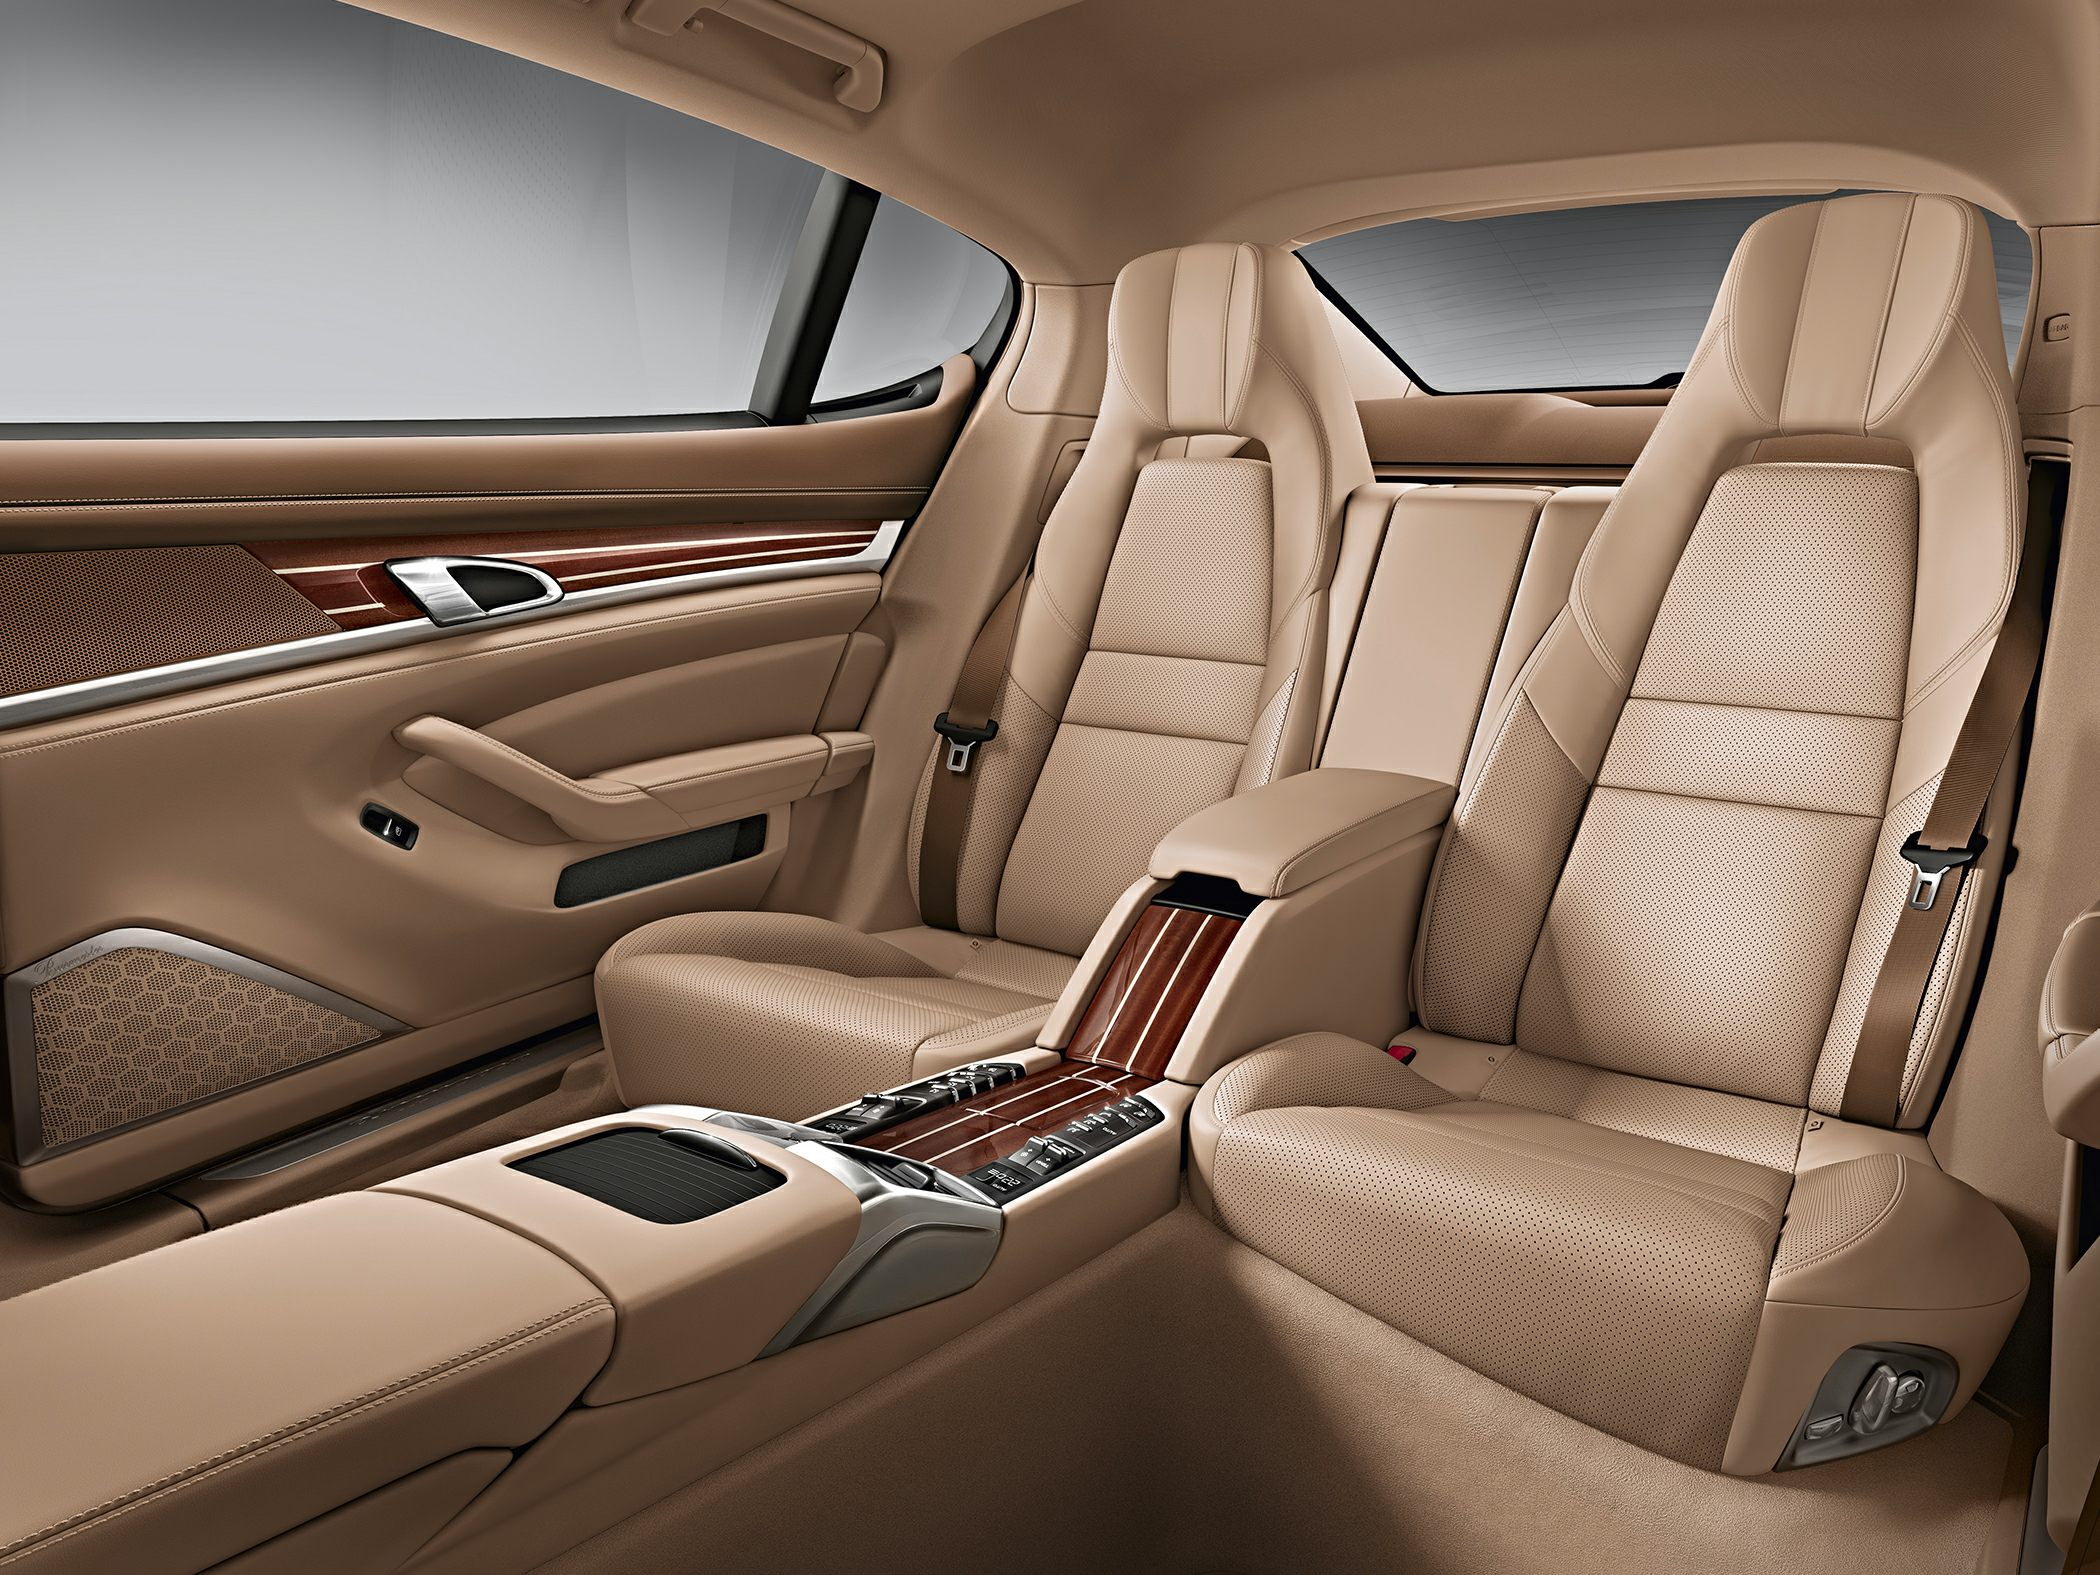 Porsche Panamera Backseat